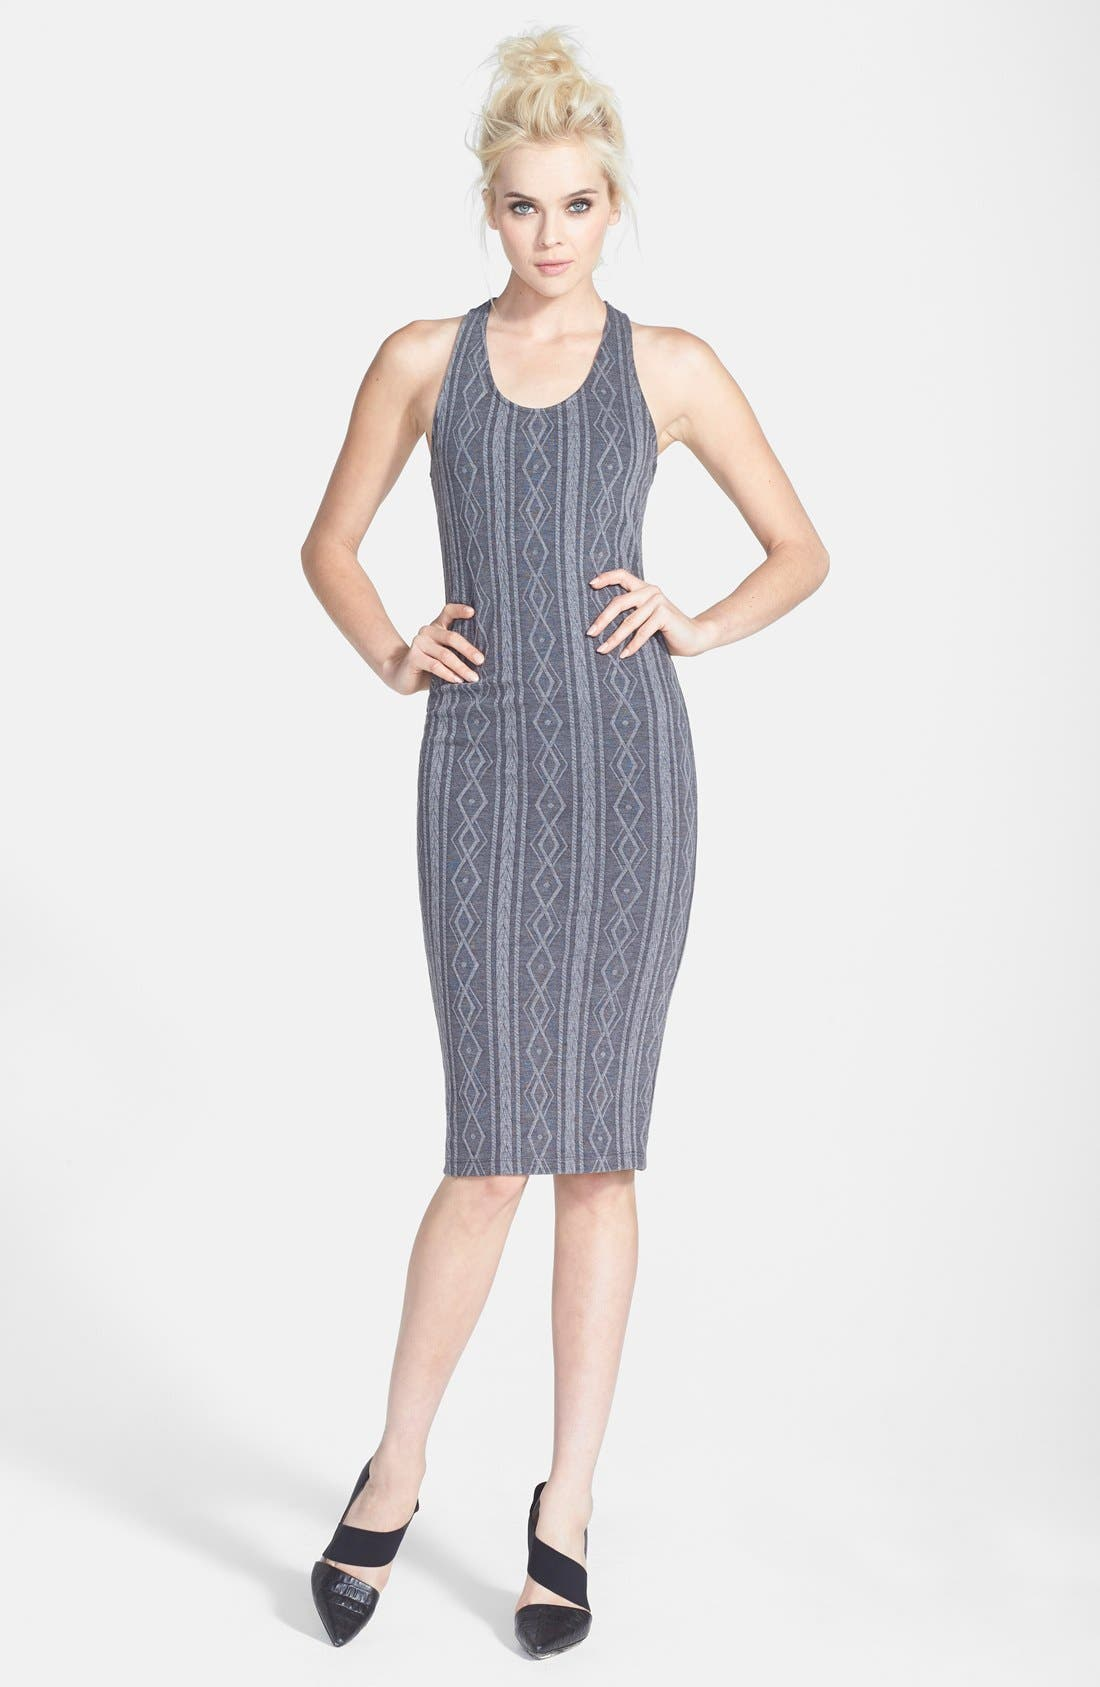 Main Image - ASTR Cross Back Body-Con Tank Dress